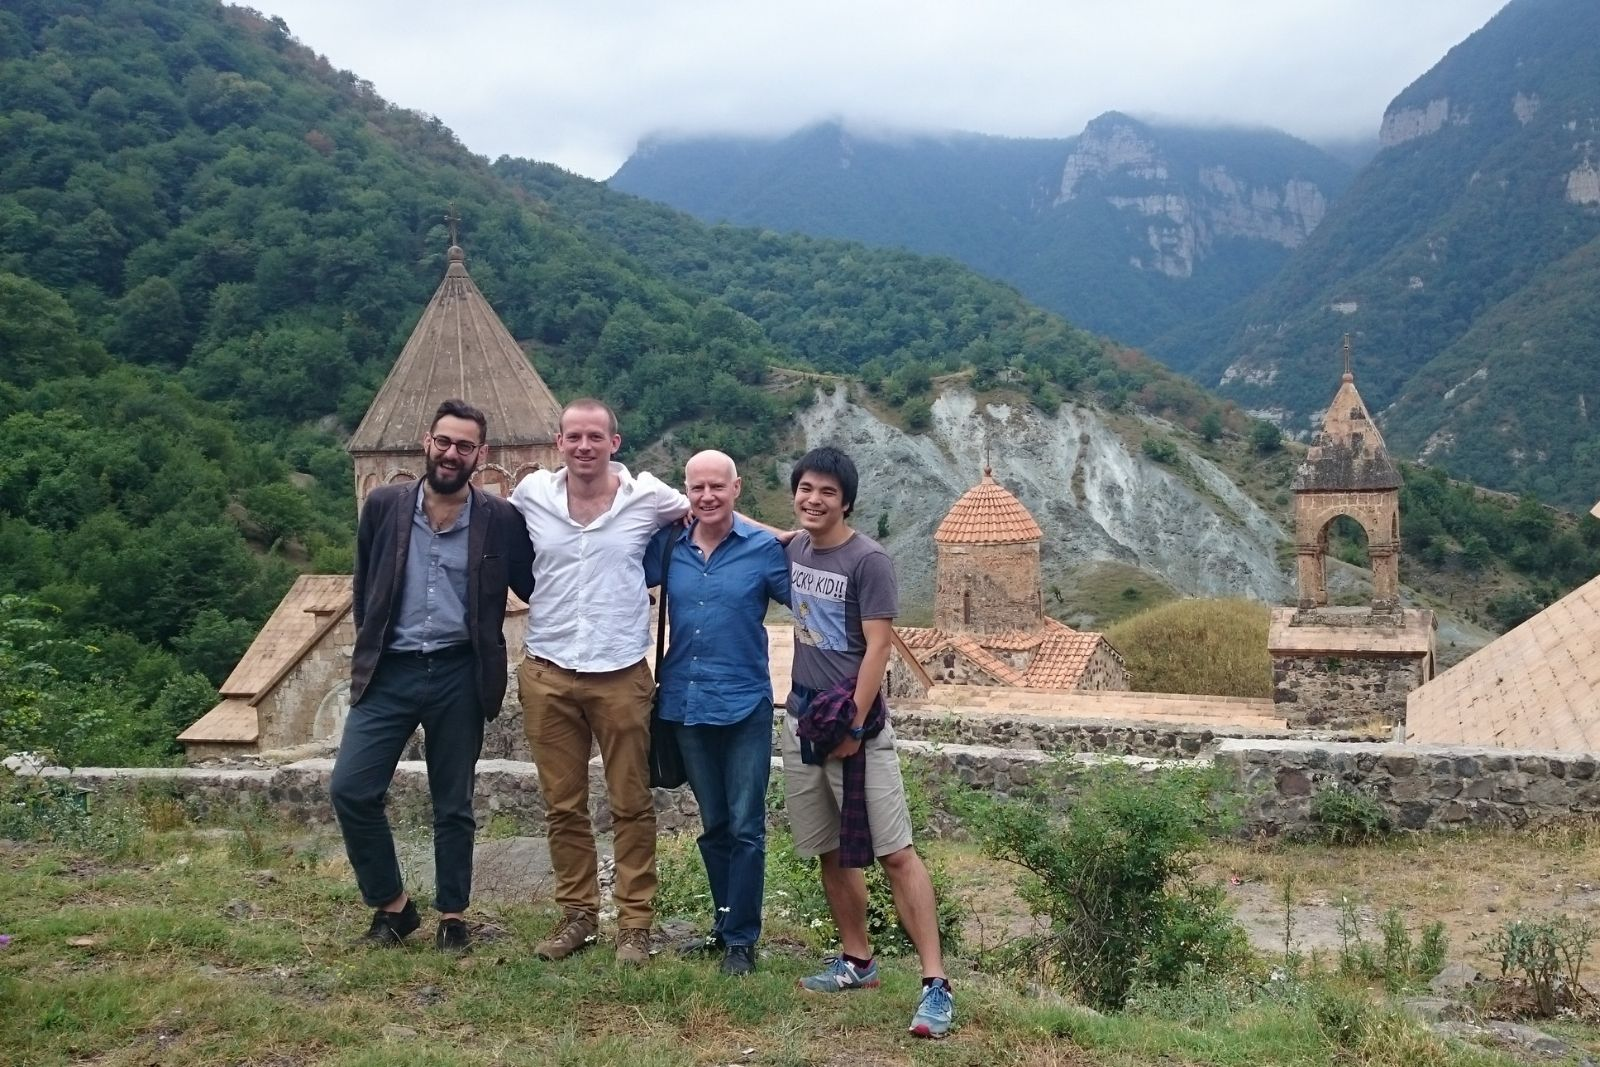 Participants of Armenian language summer school 2016 at Dadivank monastery. From left to right: Nicholas Matheou, Thomas Jurczyk, John Wynter, Chihiro Taguchi